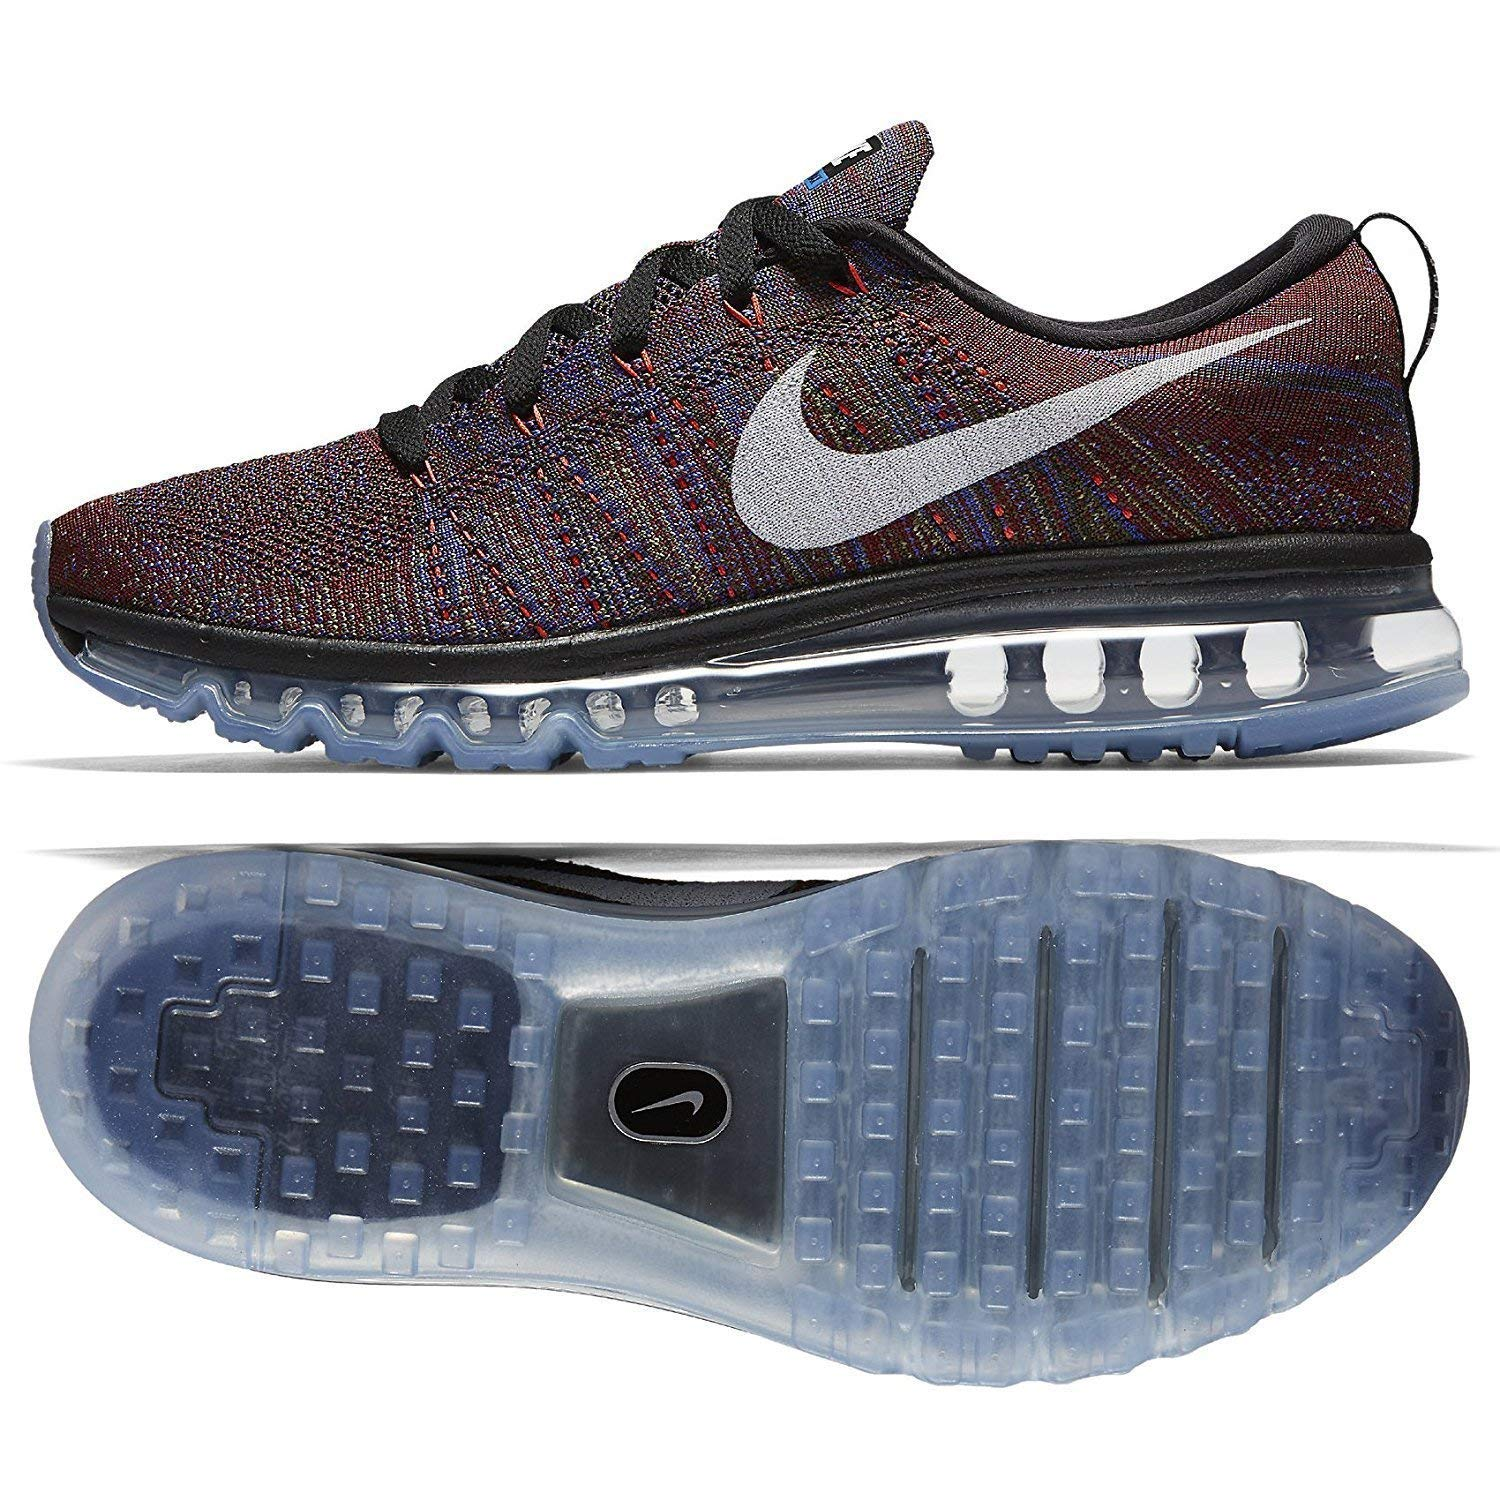 Amazon.com  Nike Flyknit Air Max Men s Running Shoes 620469-003  Shoes d82a5bf9b9